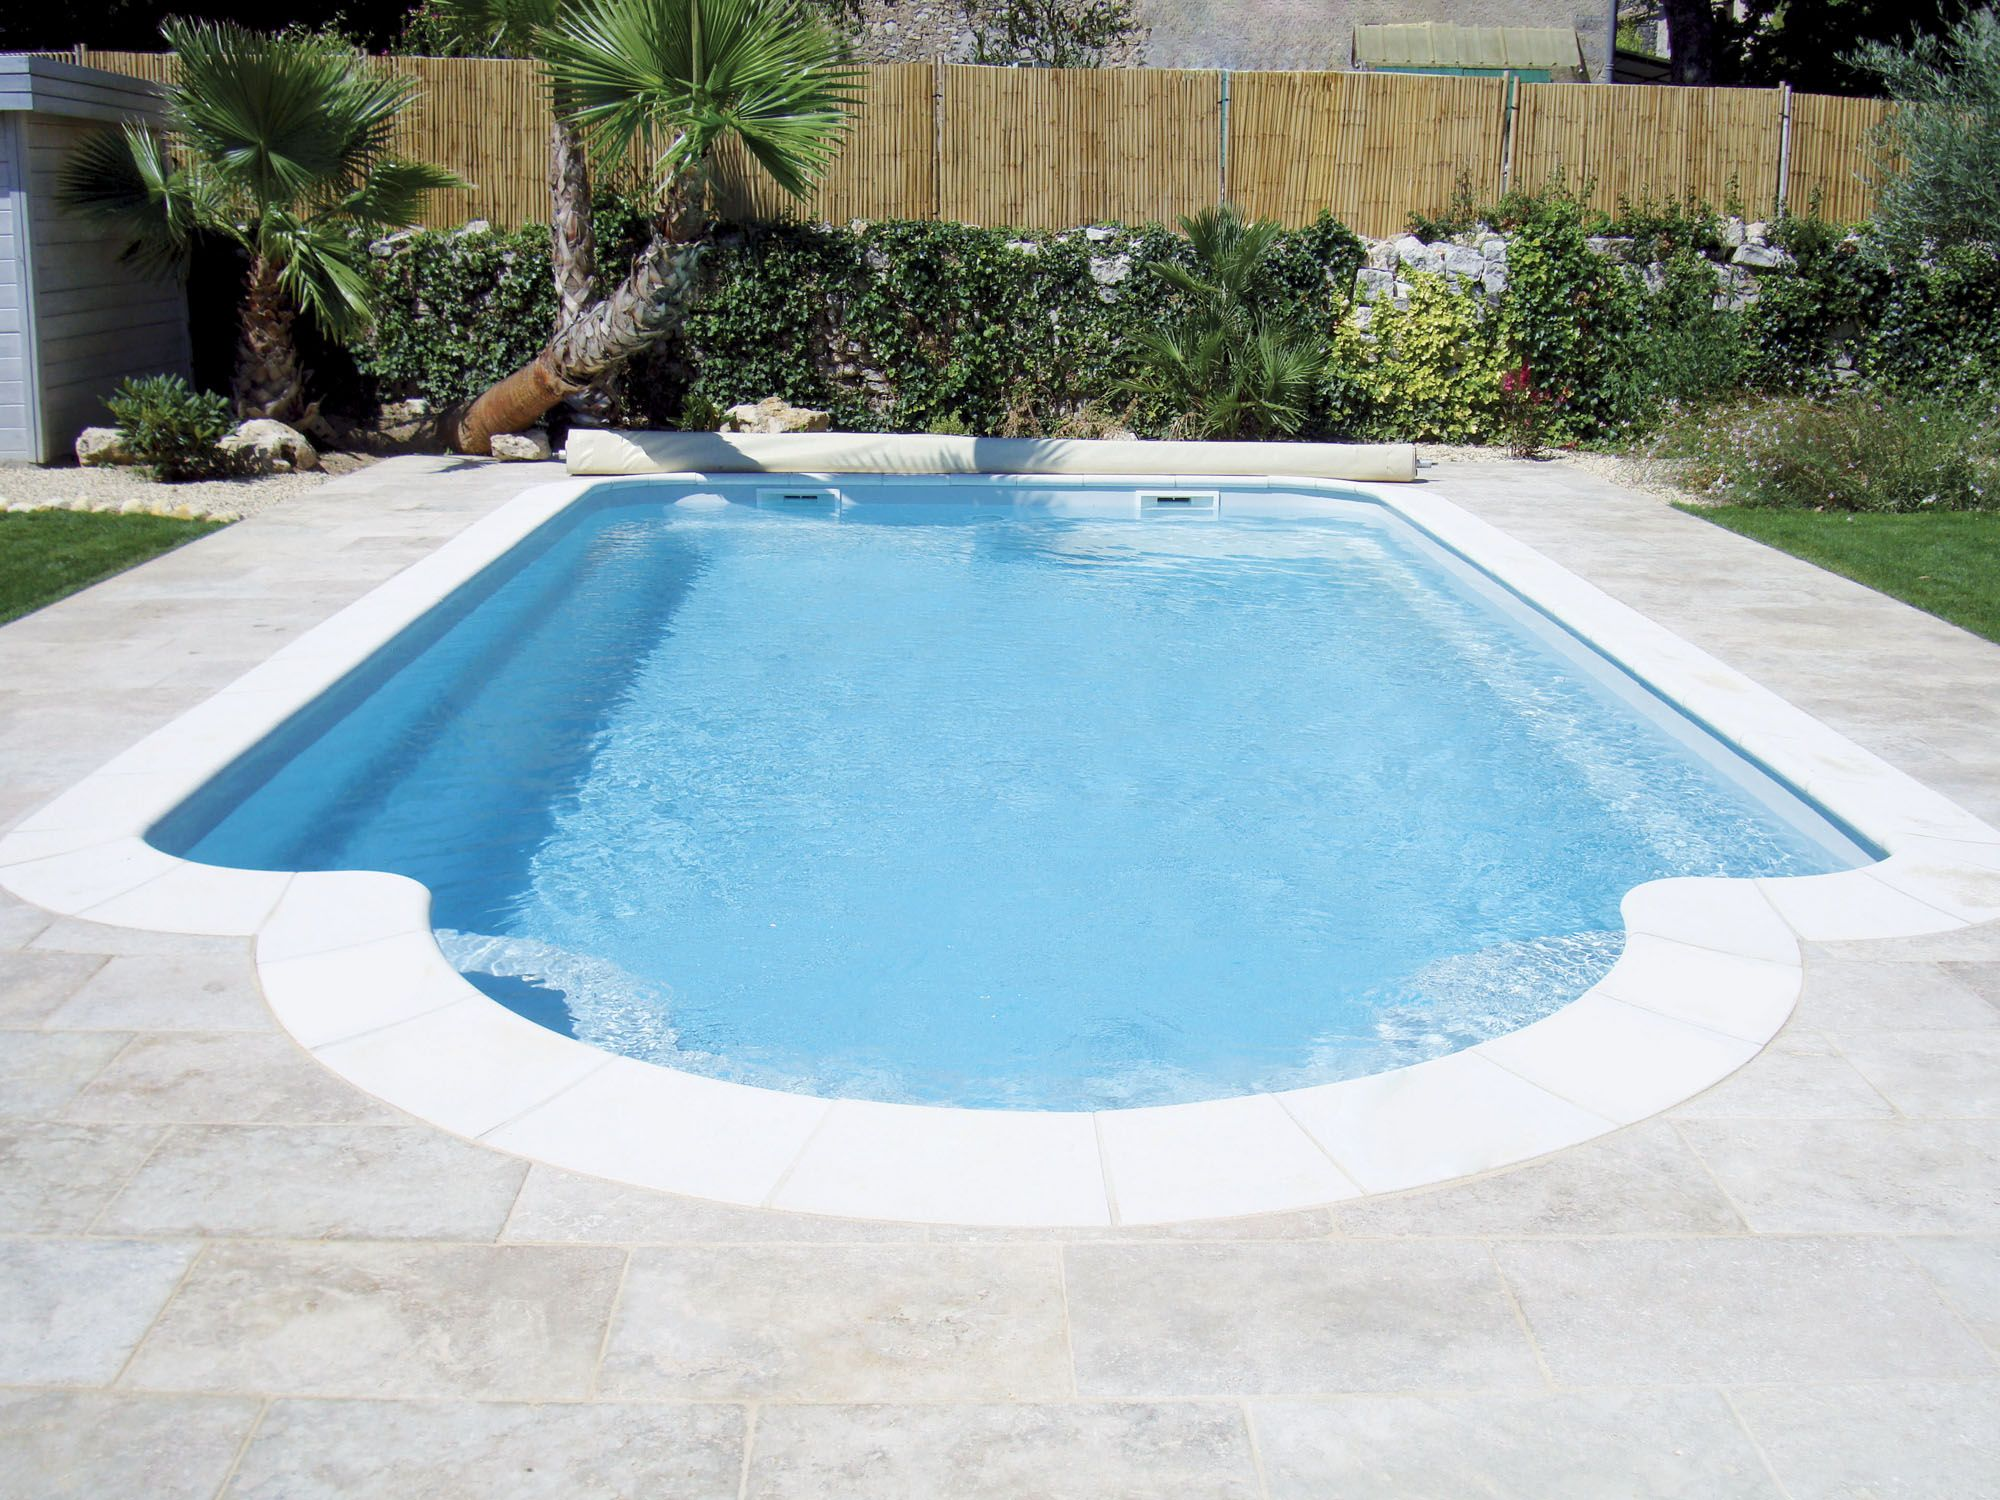 Piscine coque polyester arp ge fabrication fran aise for Piscine en coque